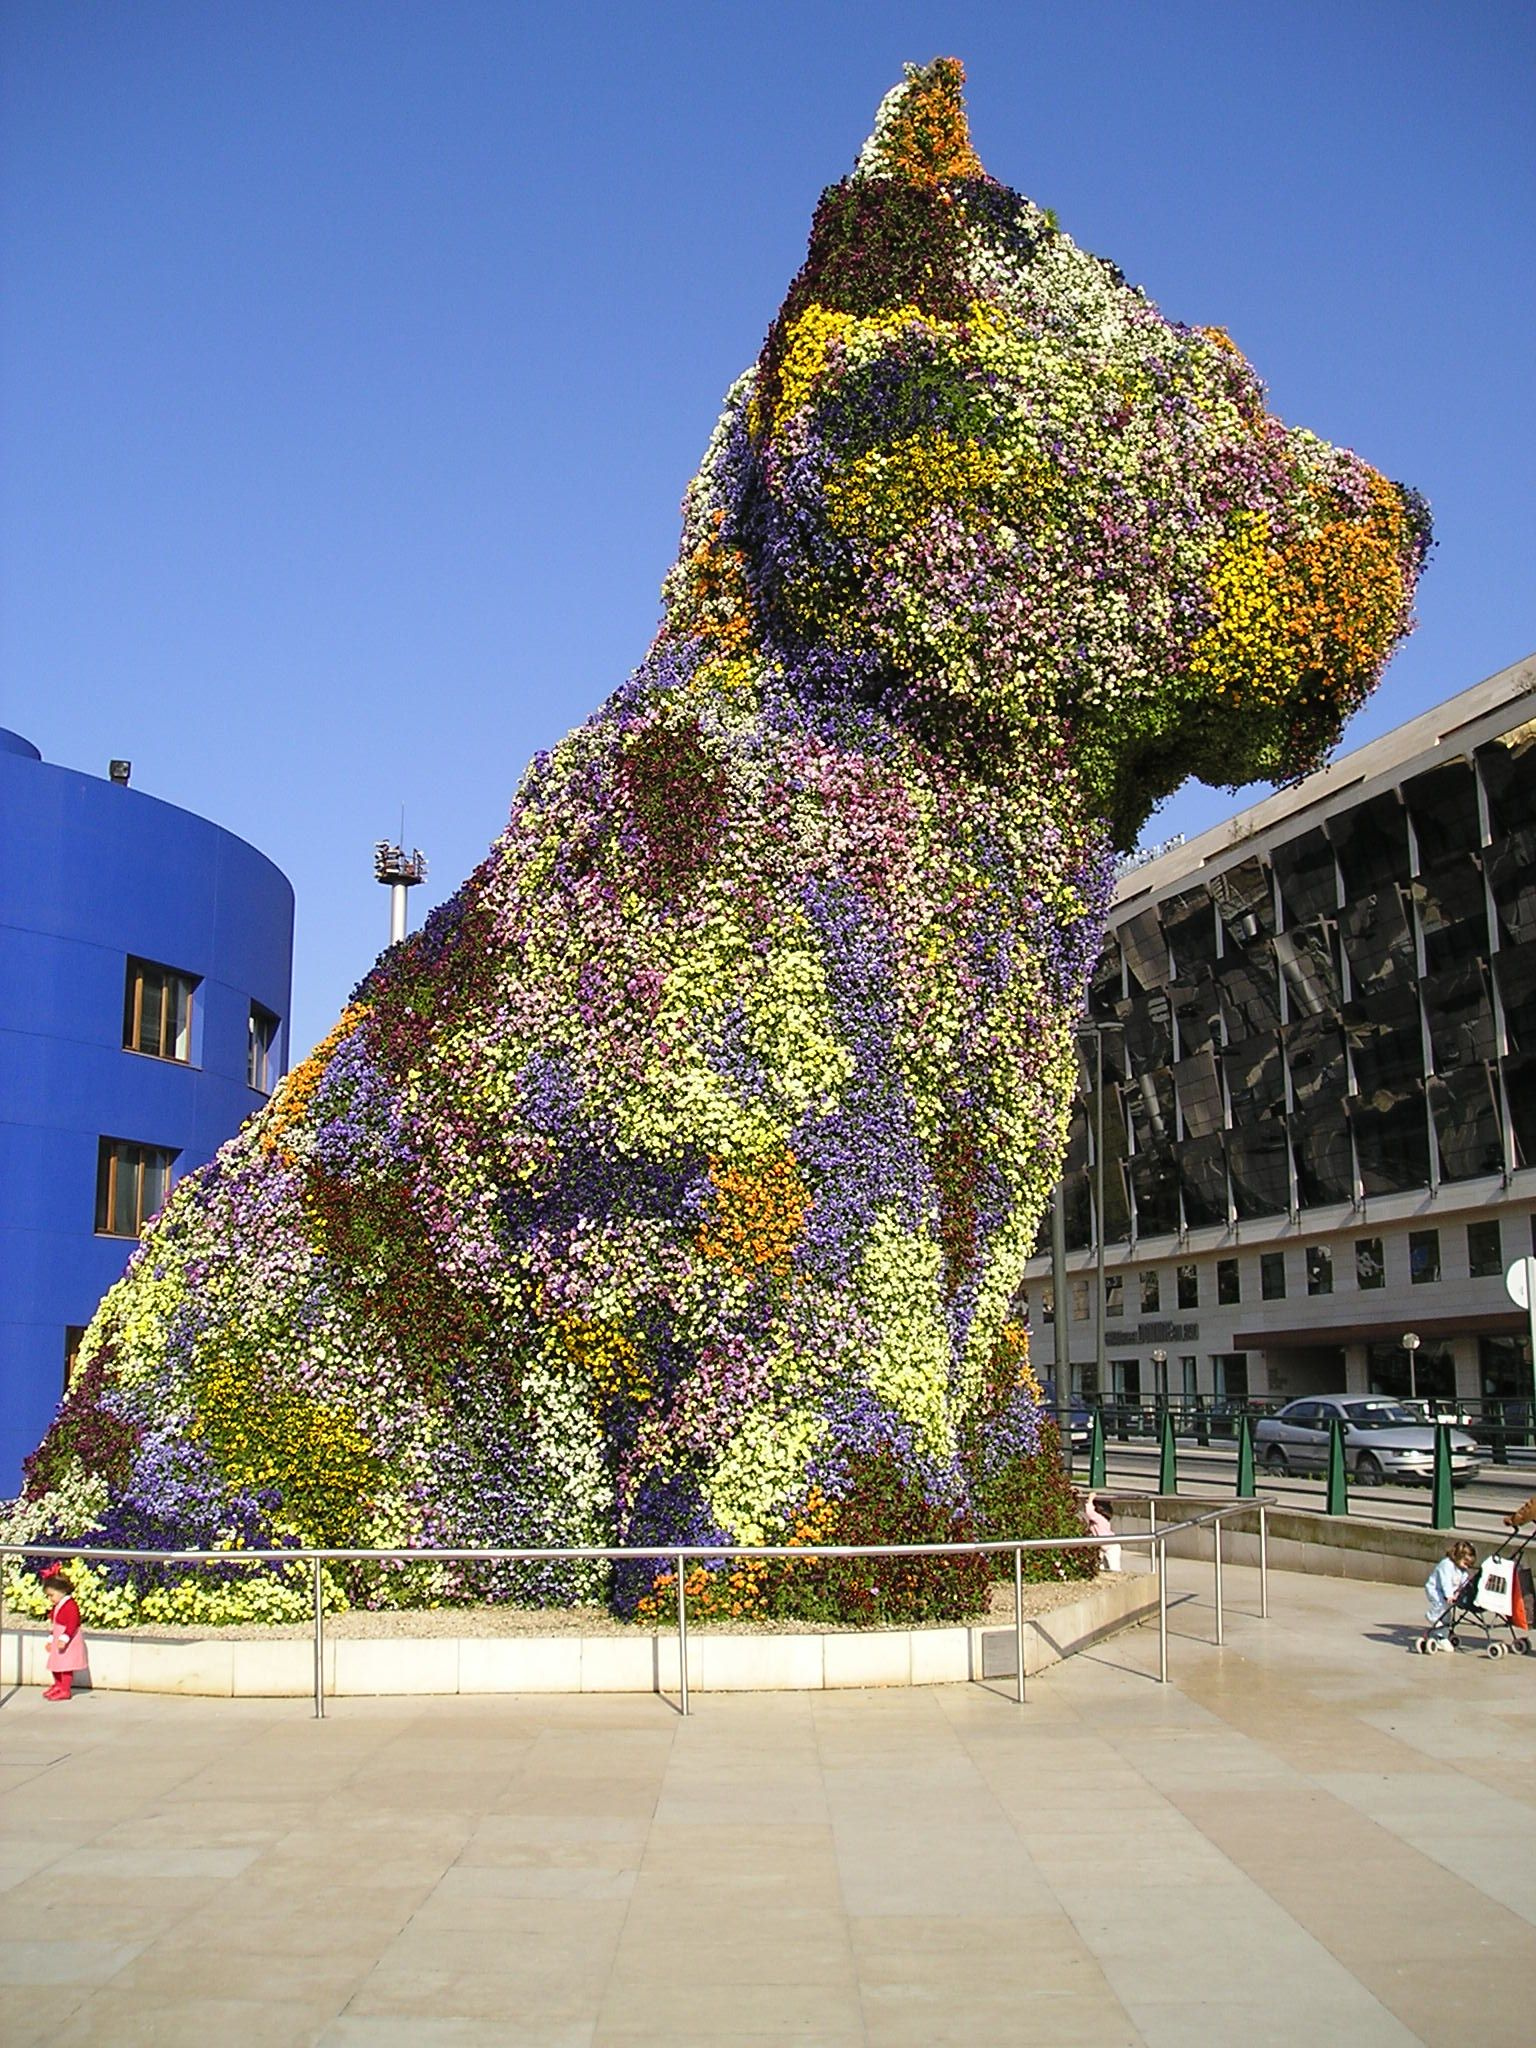 An analysis of the puppy and the artists work by jeff koons